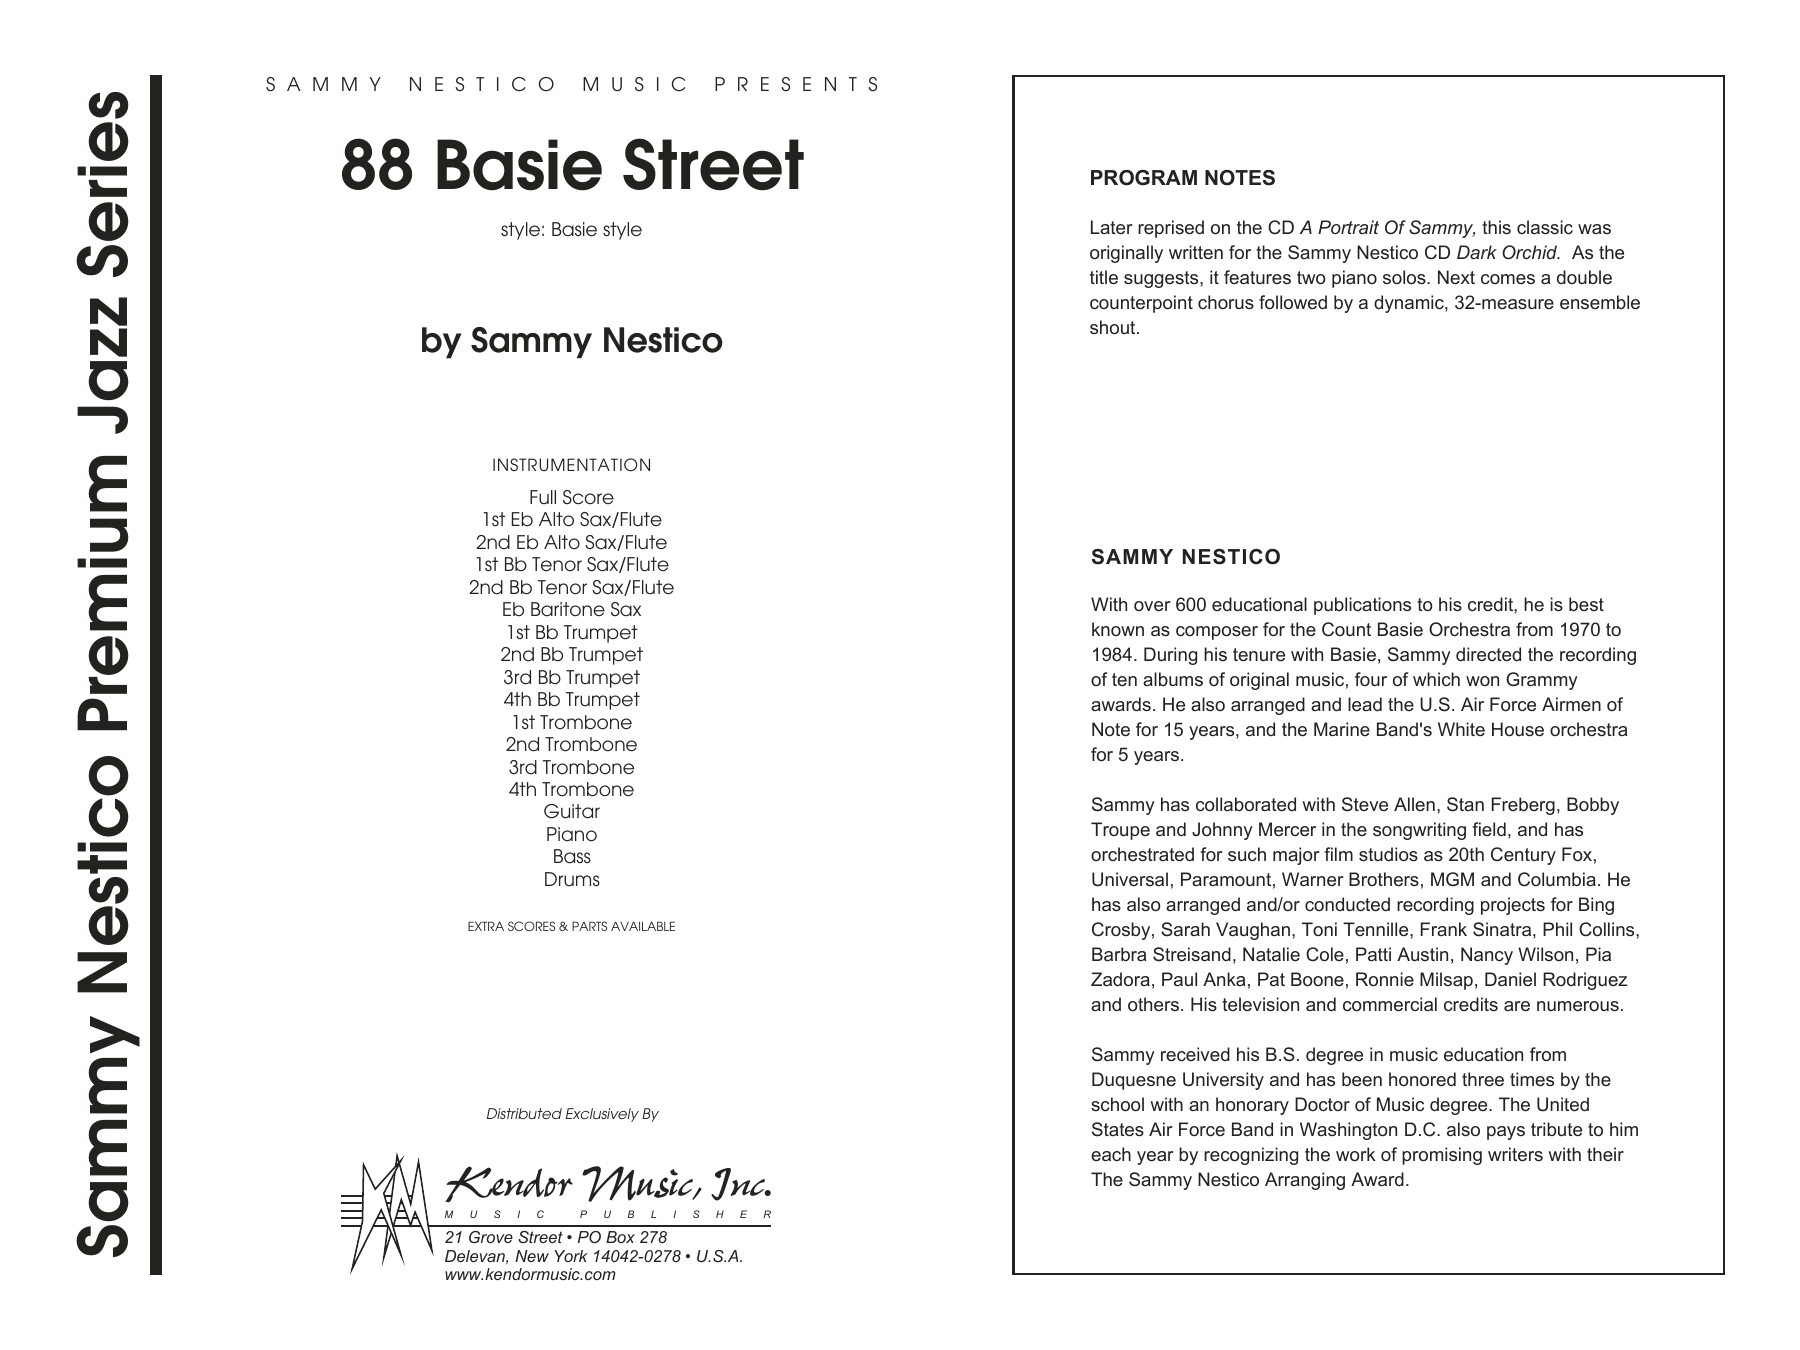 88 Basie Street - Full Score Sheet Music